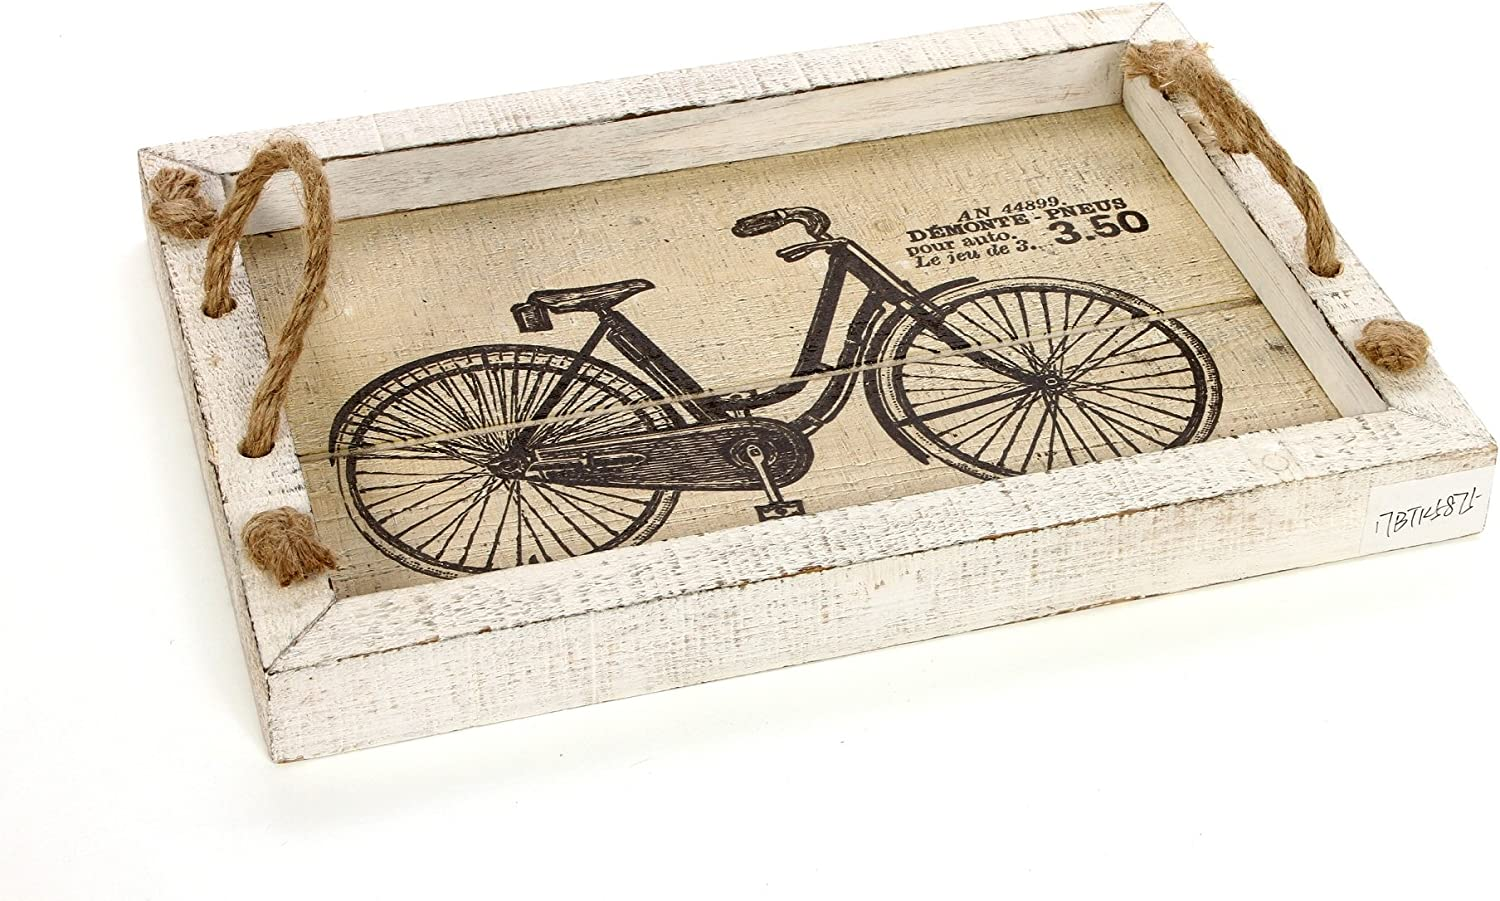 """Hosley 14"""" Long, Decorative Tabletop Bicycle Image Tray. Ideal Gift for Wedding, Home, Party Favor, Spa, Reiki, Meditation, Bathroom Settings O9"""